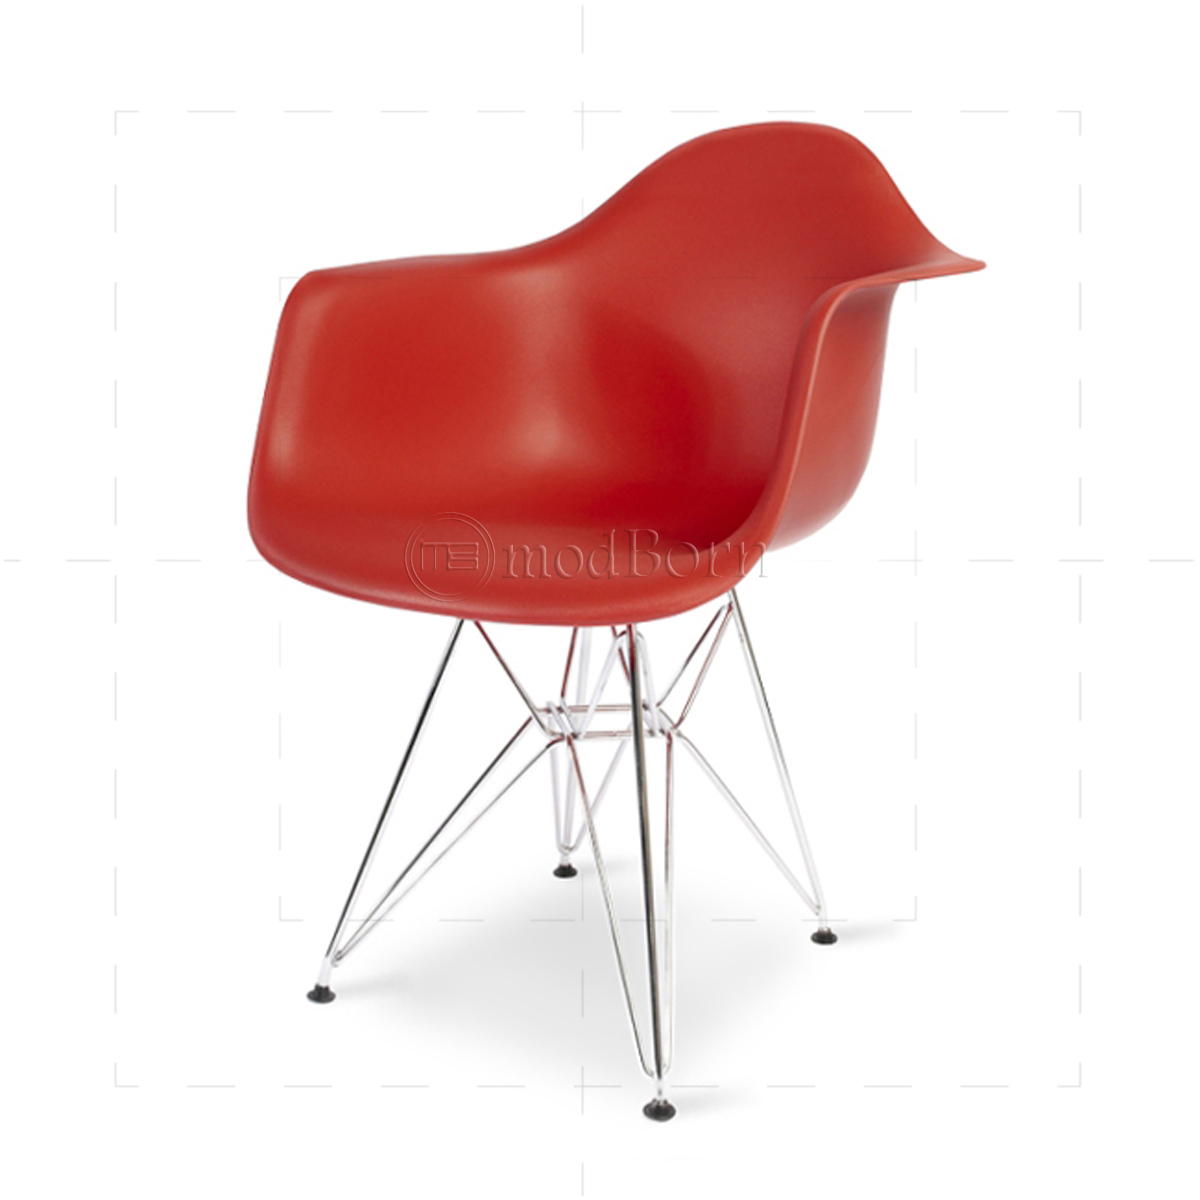 eames style dining dar arm chair red replica. Black Bedroom Furniture Sets. Home Design Ideas